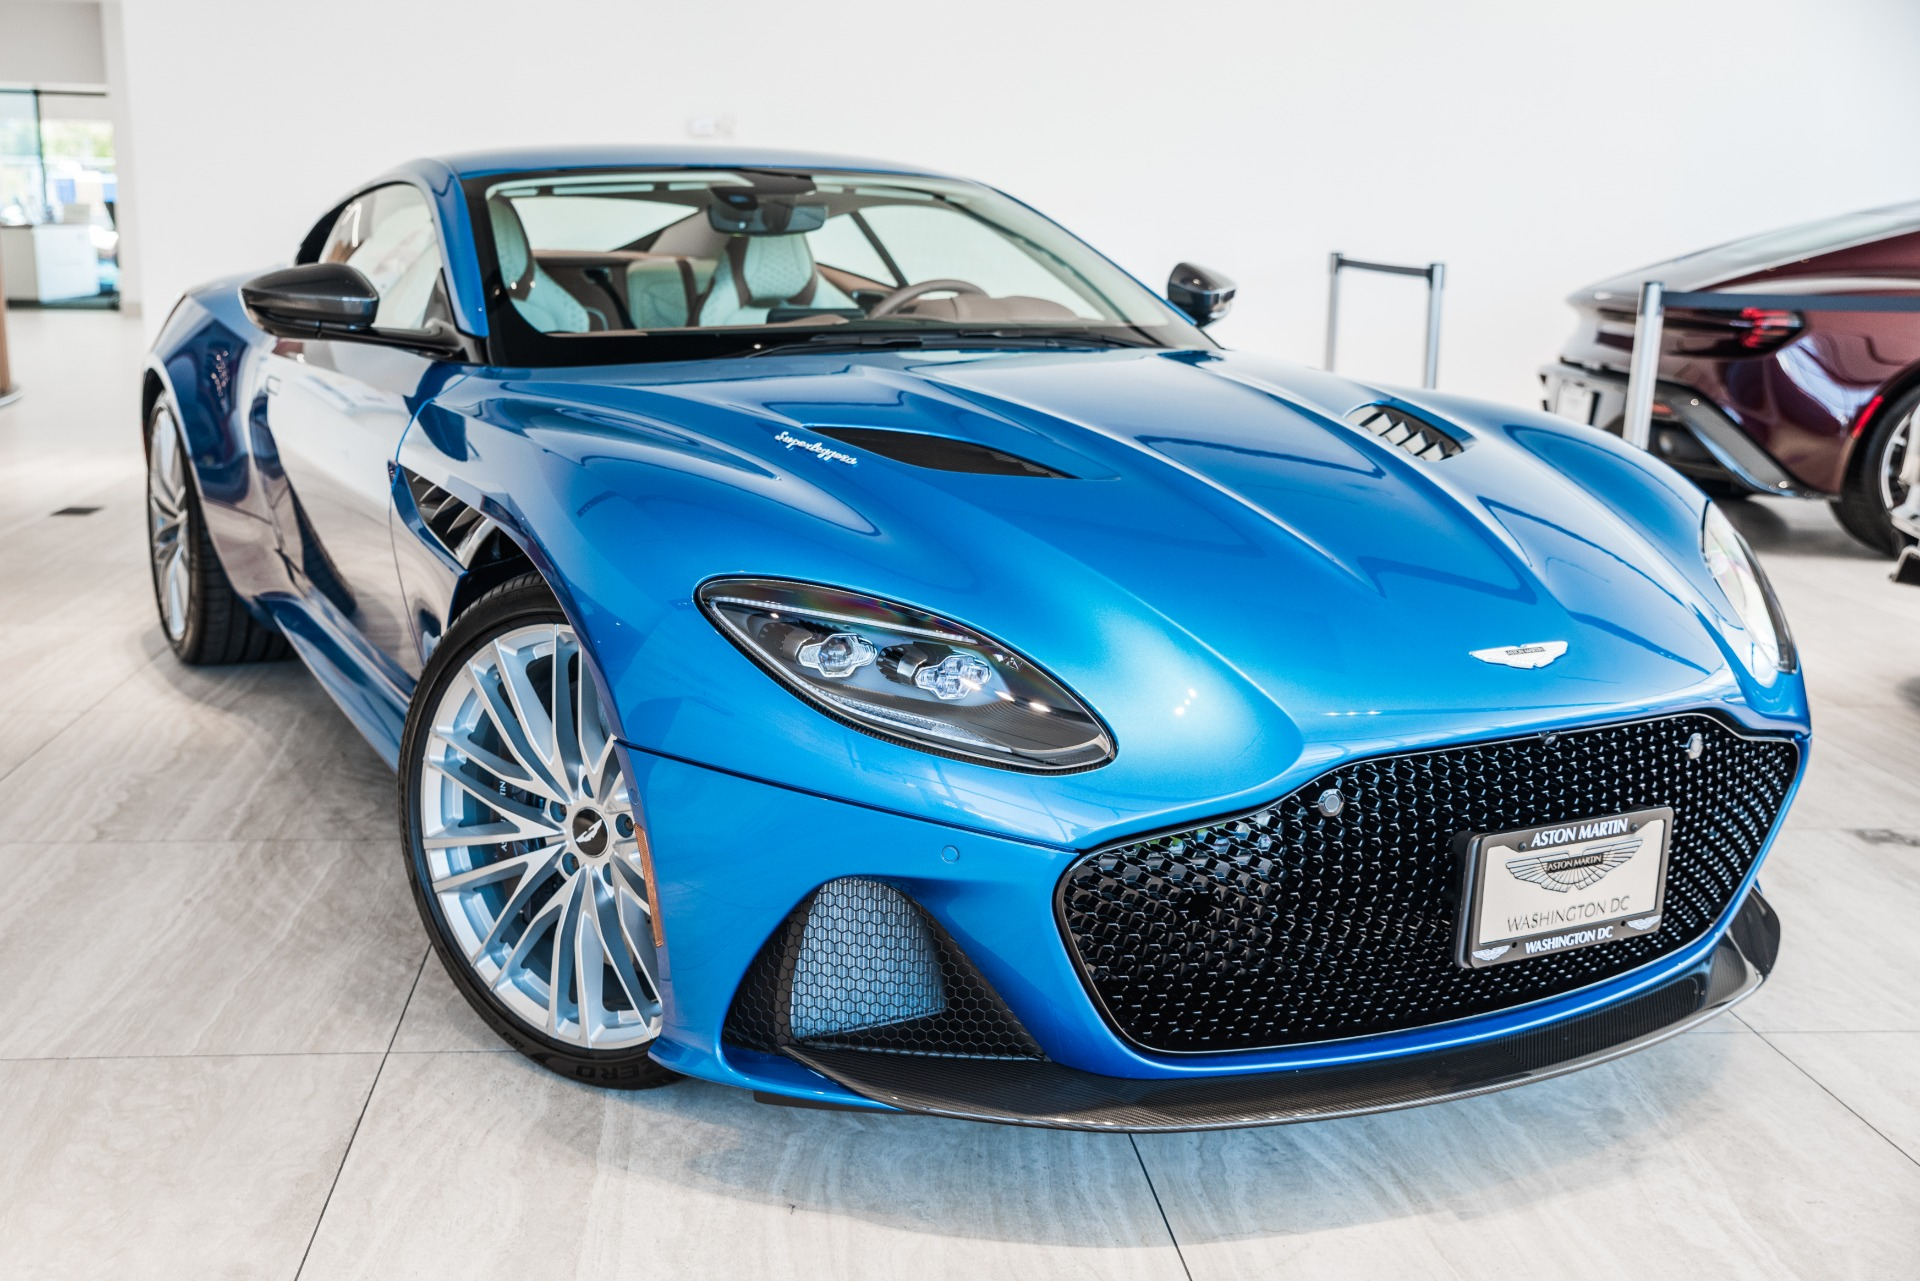 2020 Aston Martin Dbs Superleggera Stock 20nr01334 For Sale Near Vienna Va Va Aston Martin Dealer